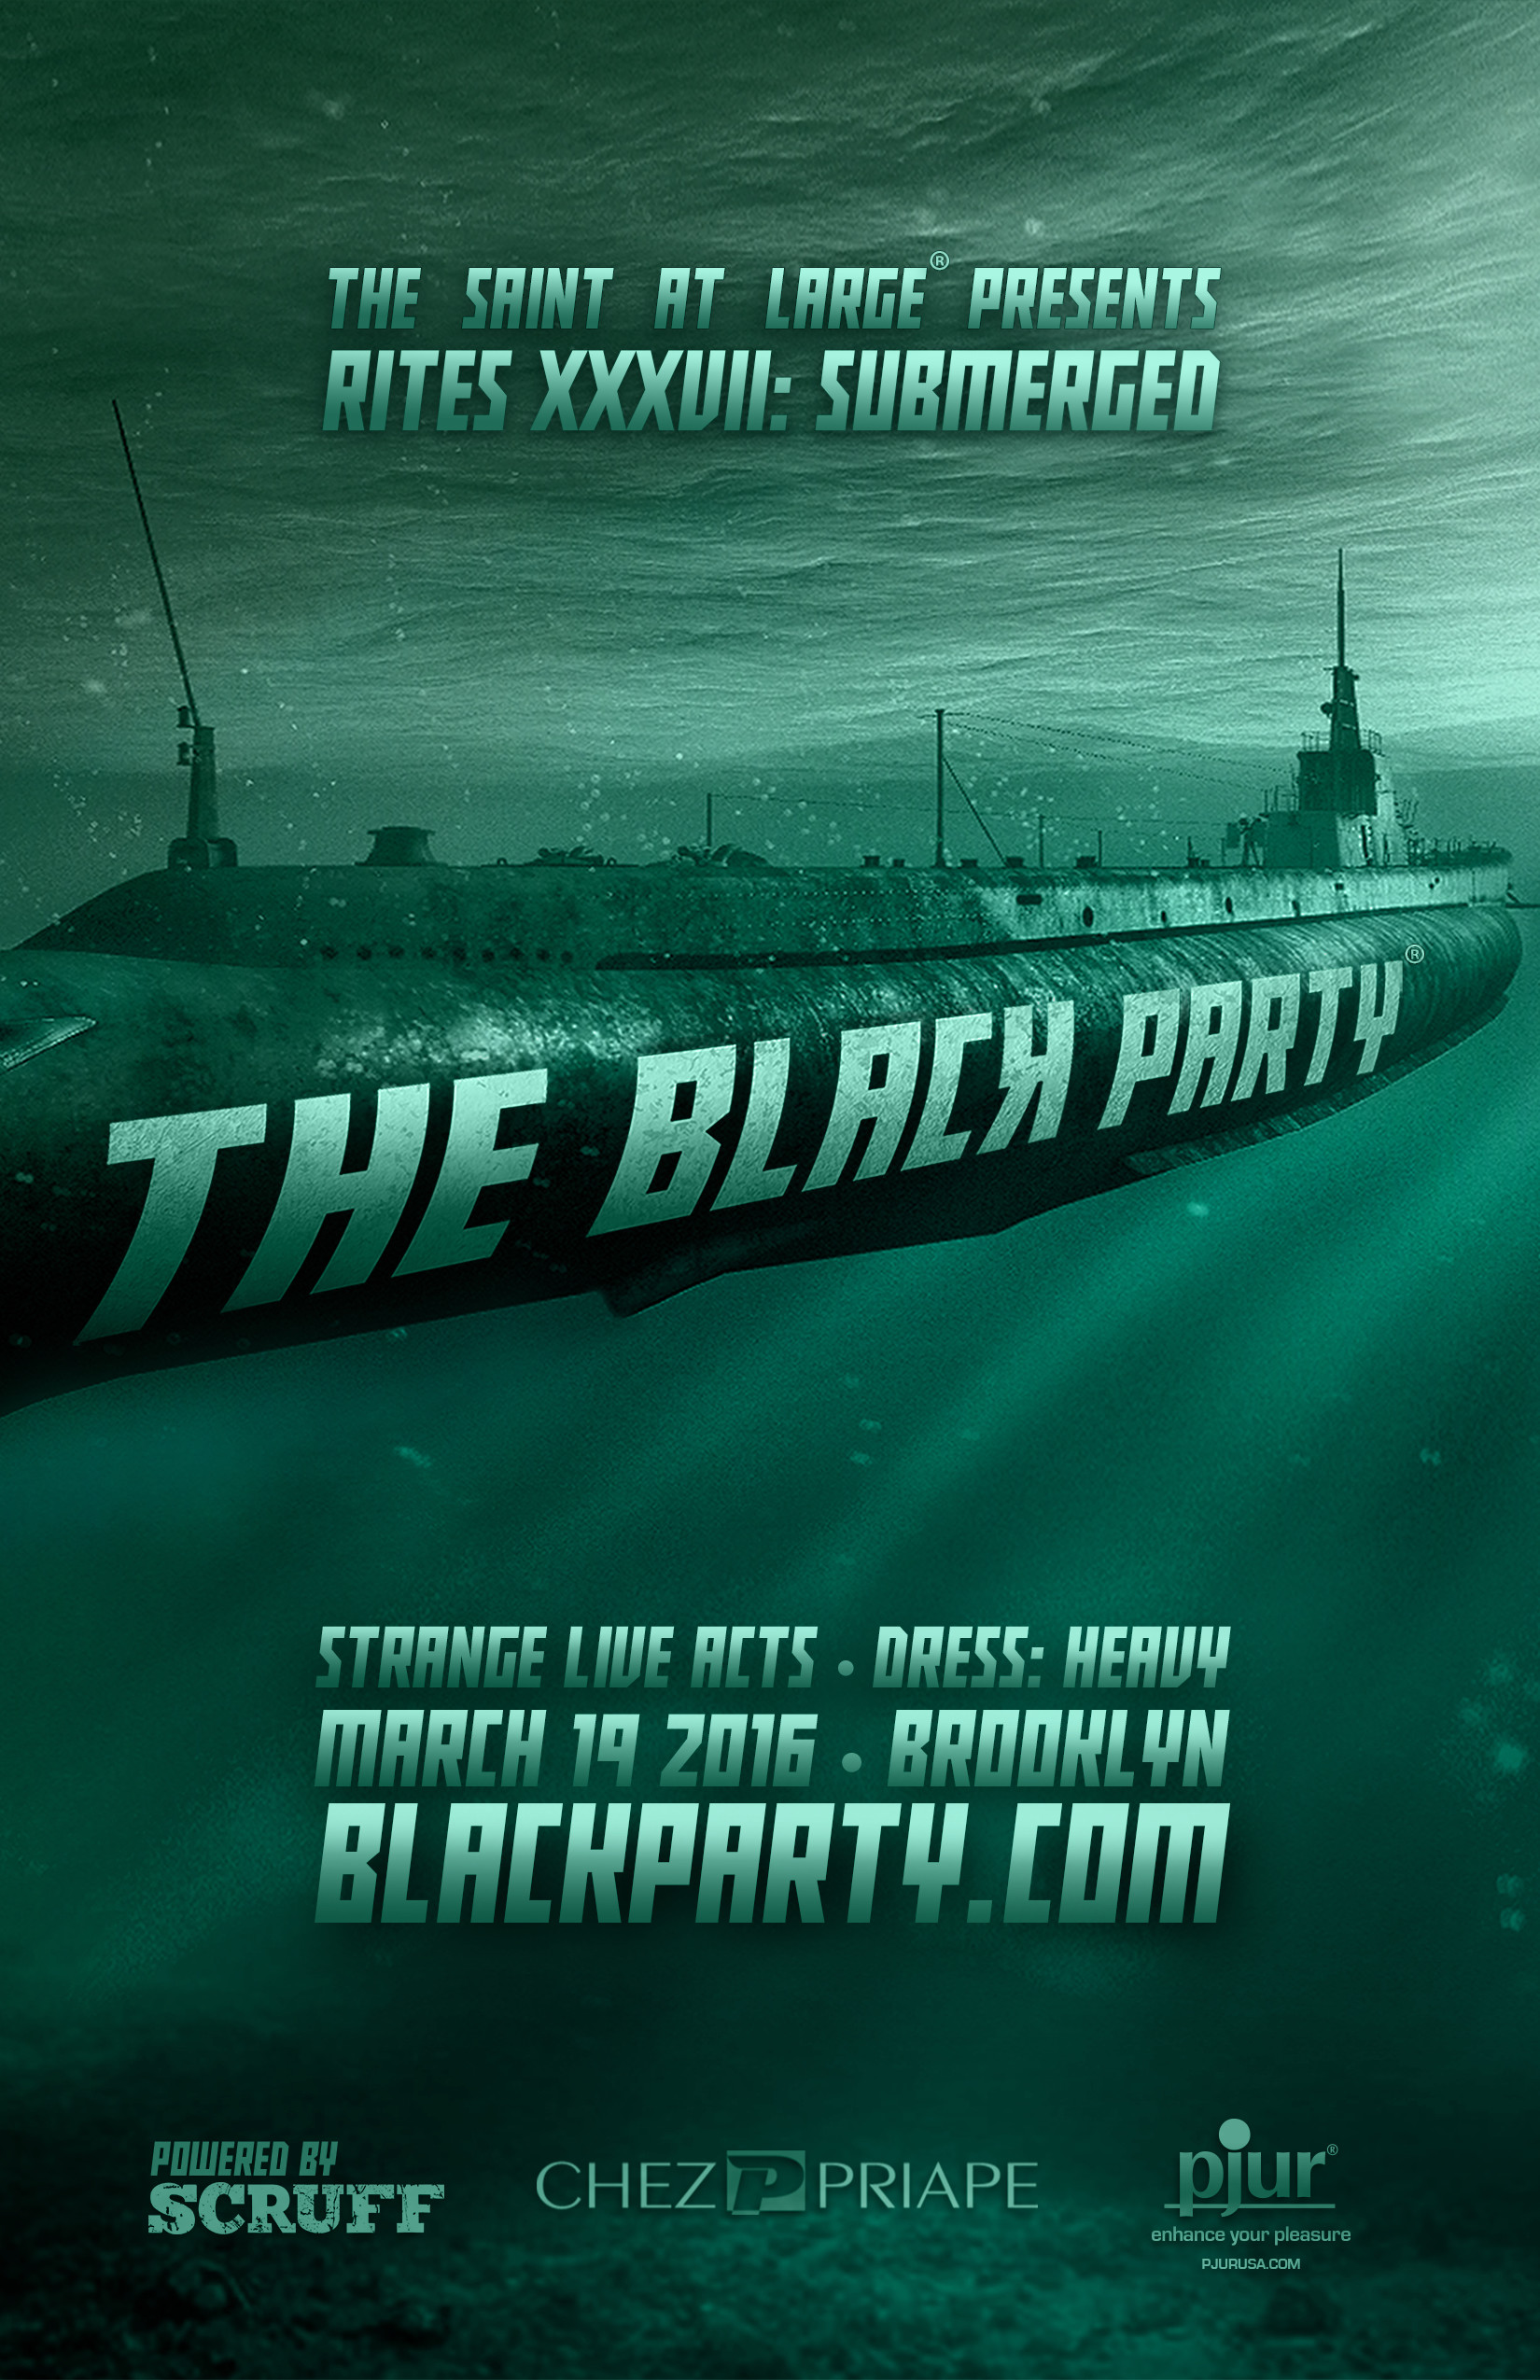 RITES XXXVII: The Black Party